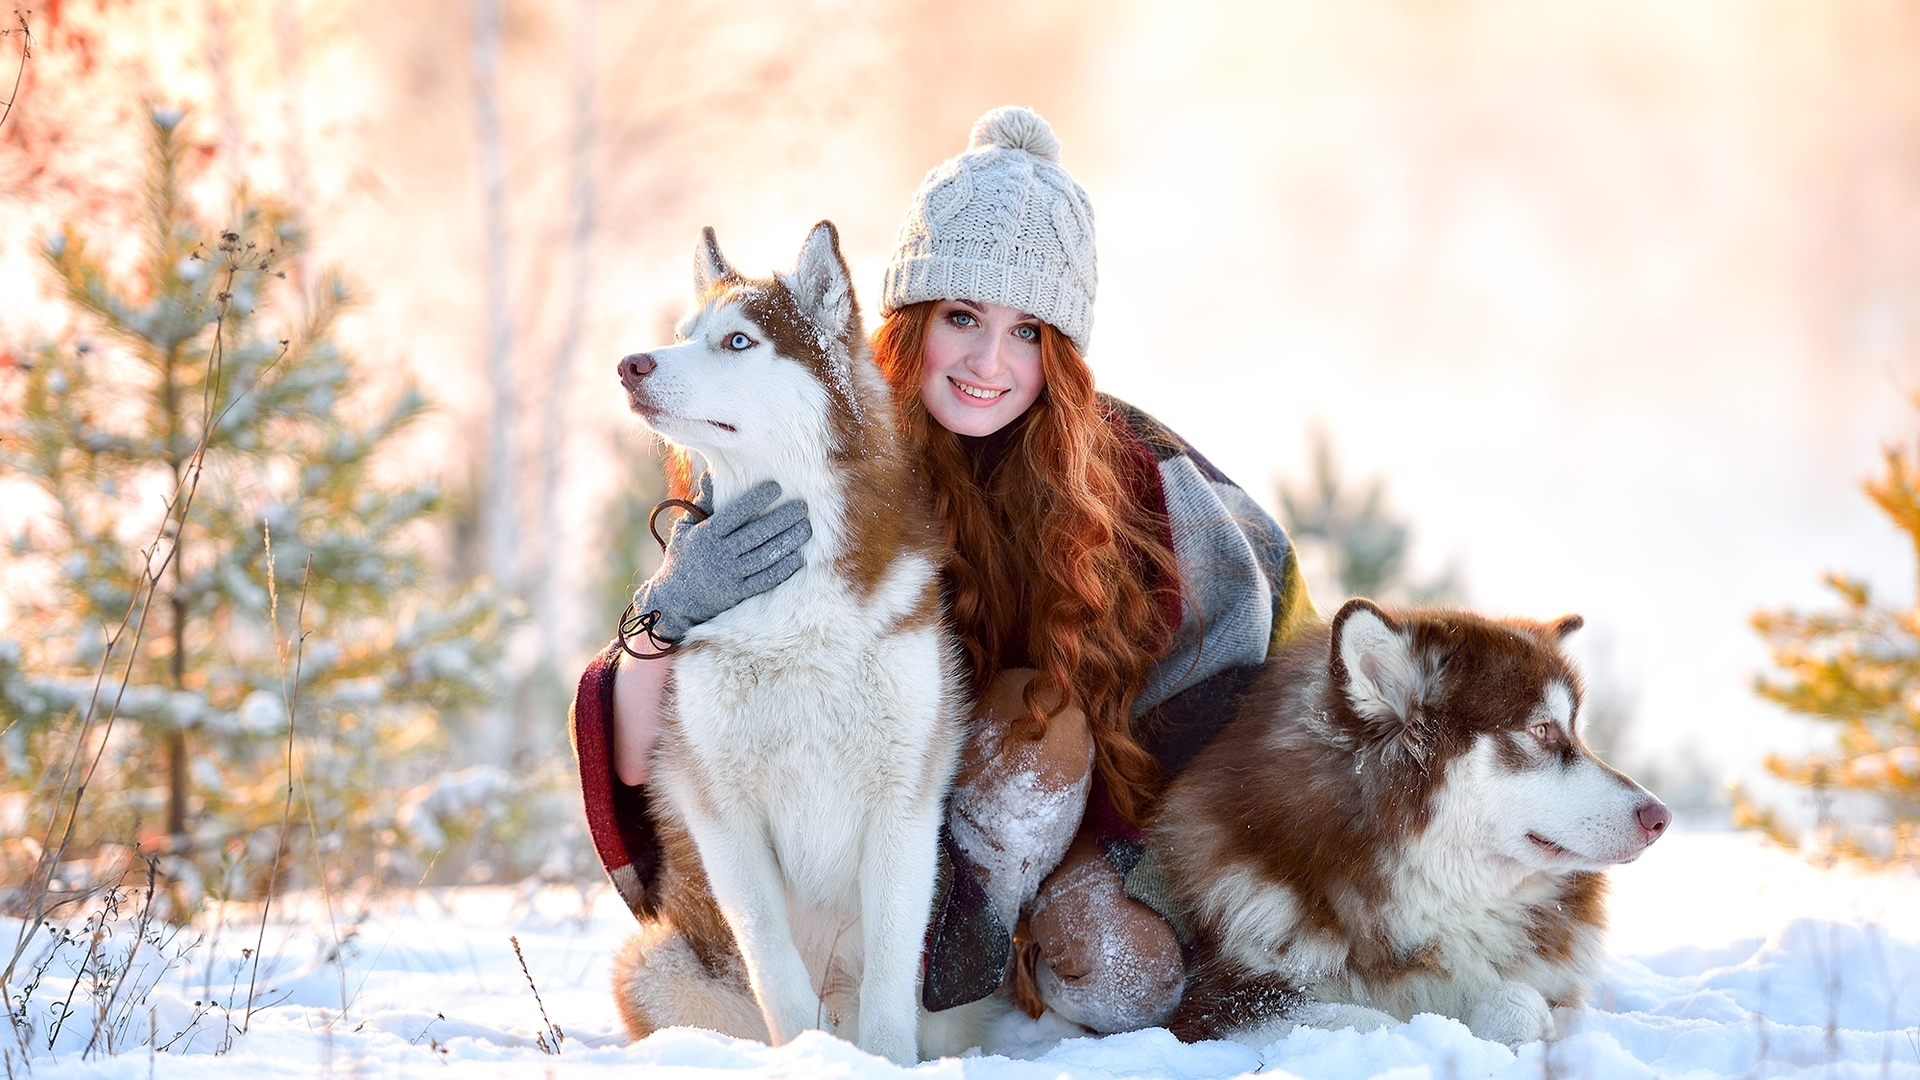 Indian Cute Girl Wallpaper Download 1920x1080 Girl In Snow With Siberian Husky Laptop Full Hd